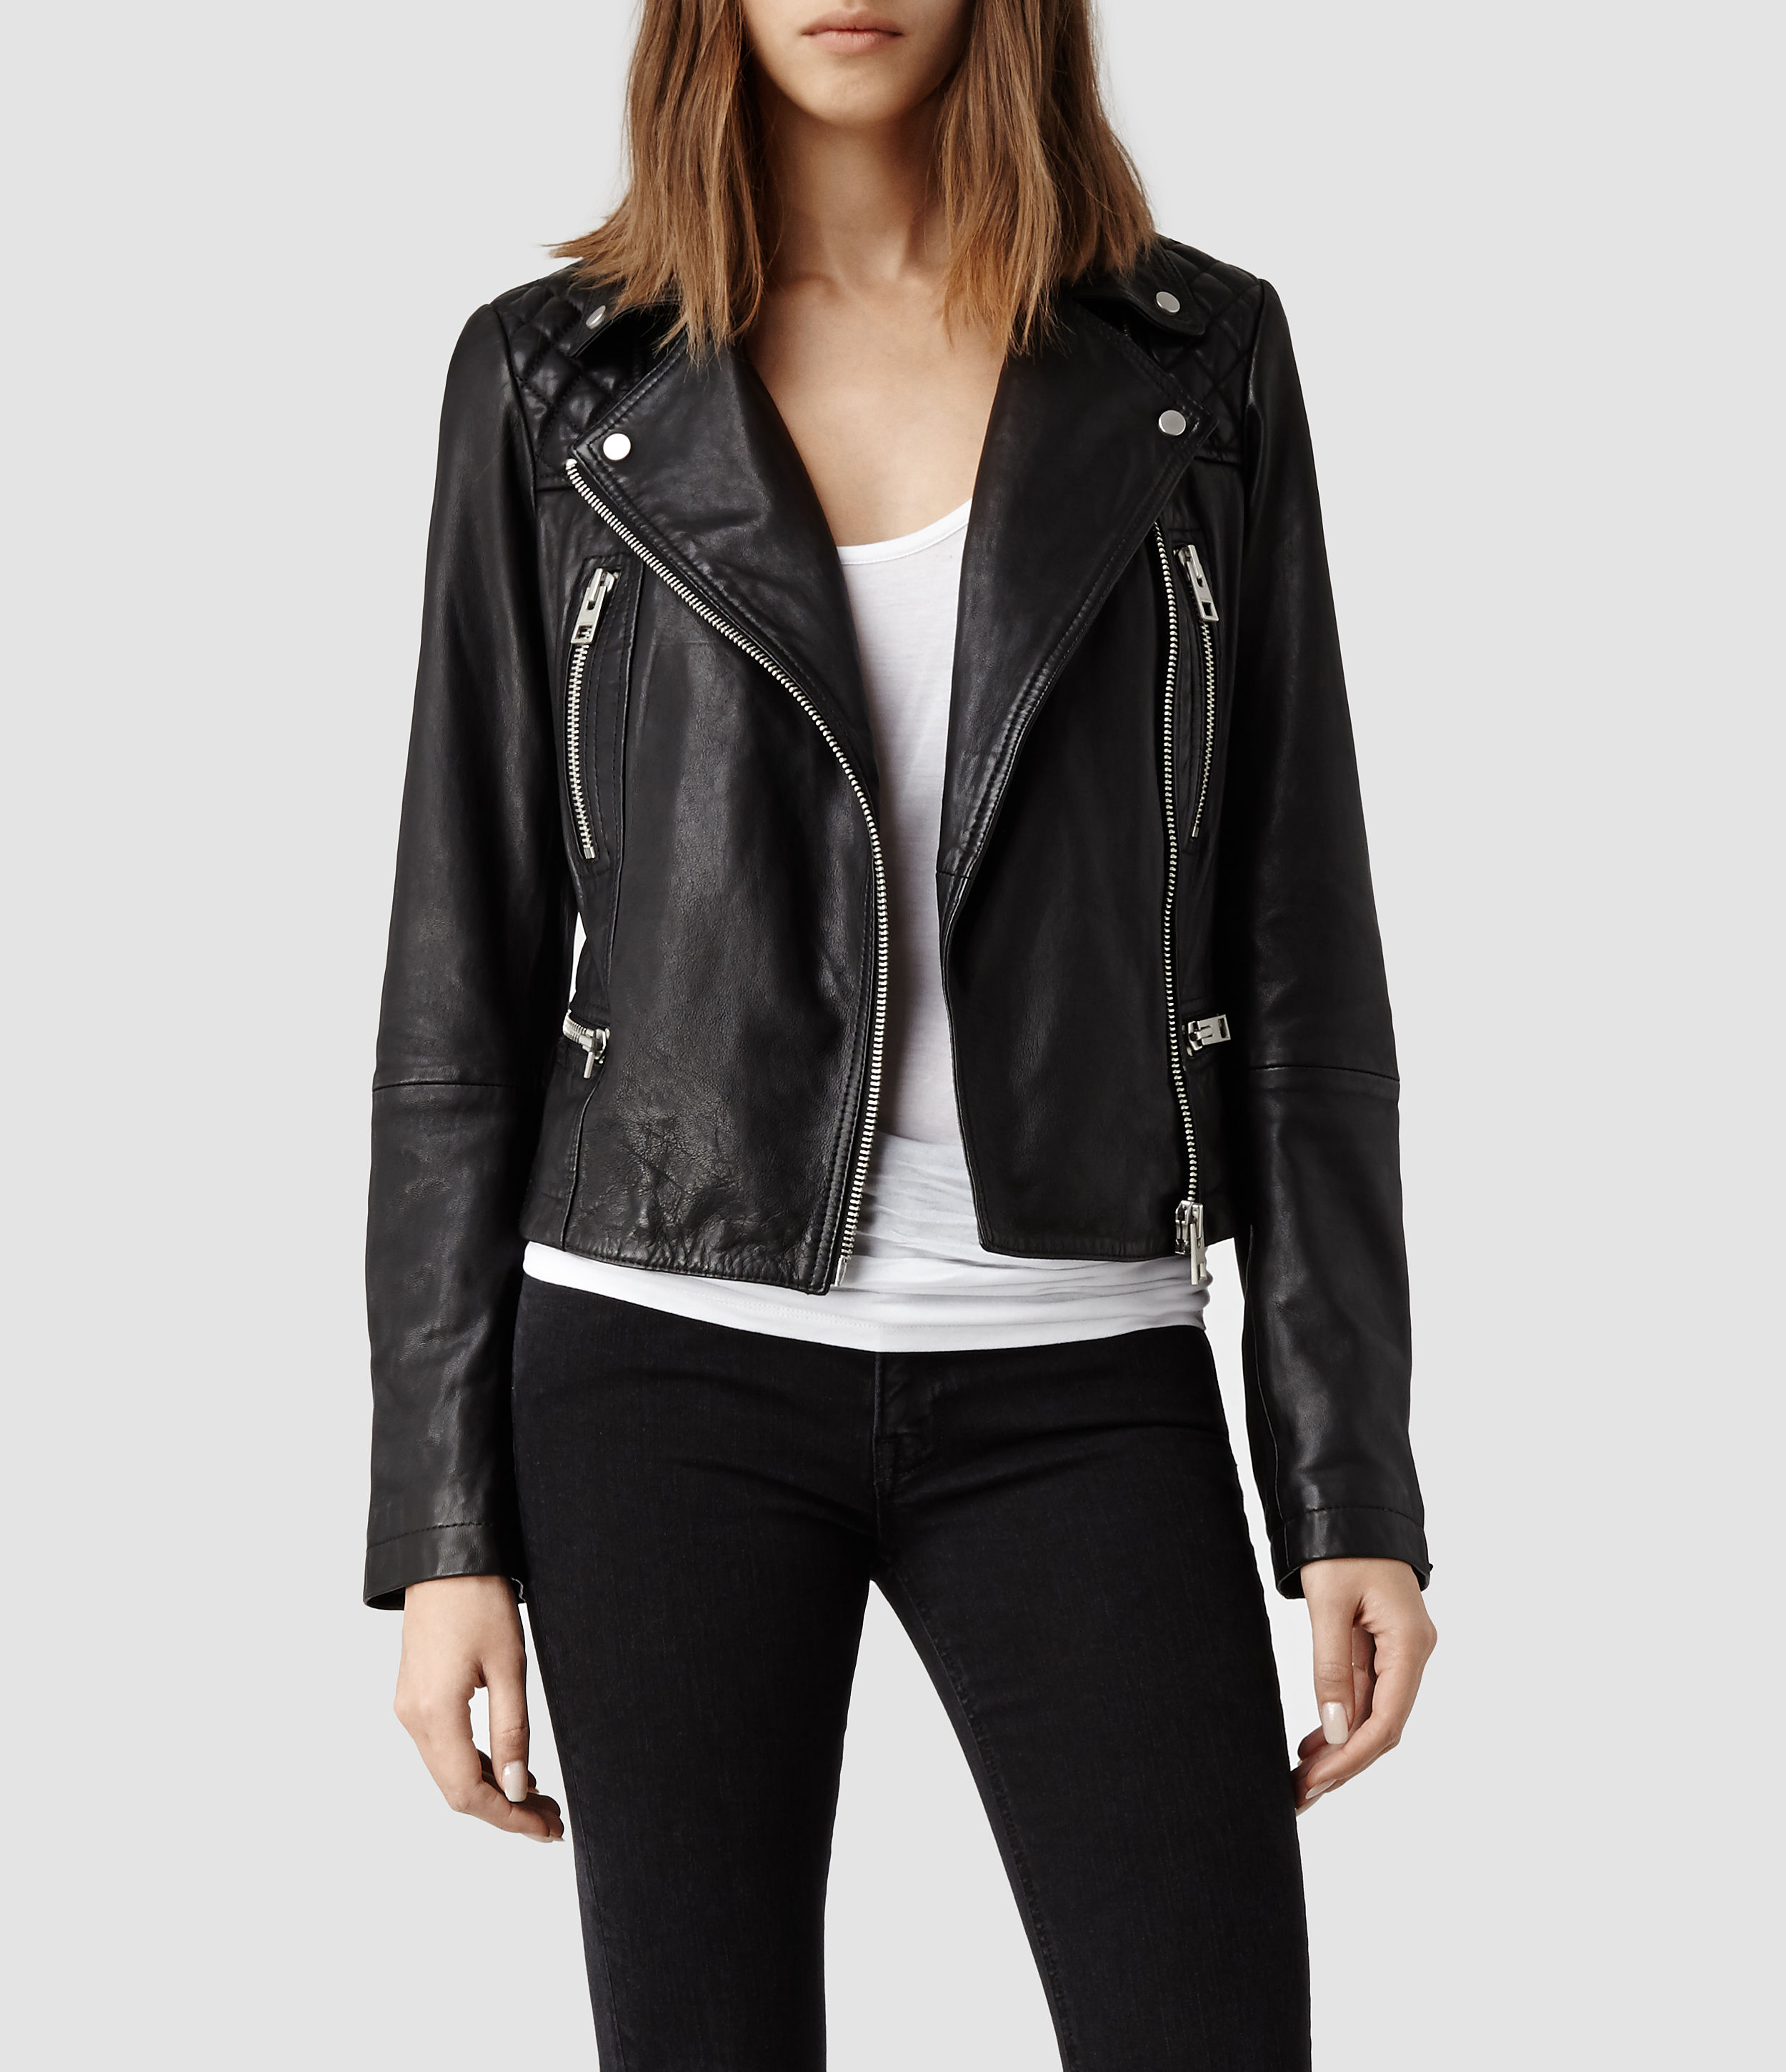 All saints leather jackets women